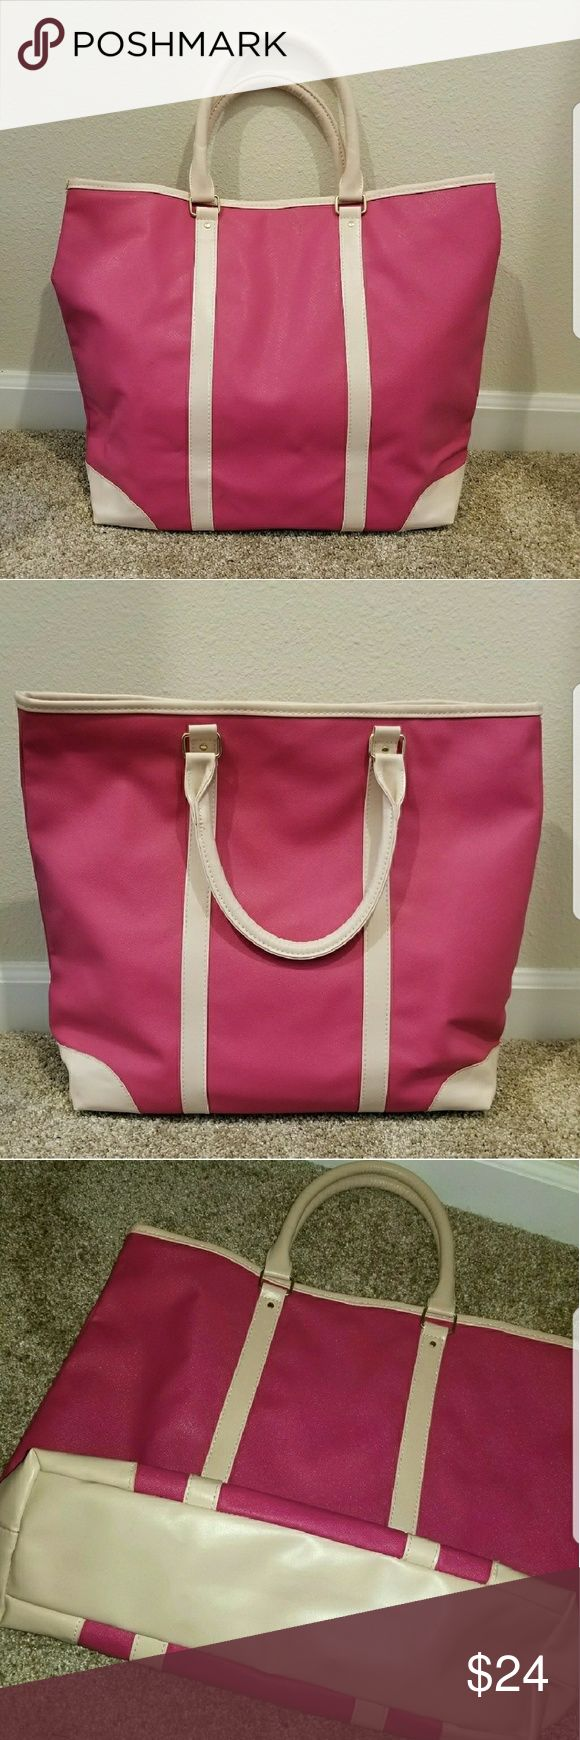 Pink and cream tote bag Pink and cream / beige tote bag great for beach or every day! I've only used this once, but in excellent like-new condition. 2 small dots on one side, hardly noticeable (see close up image and full image).  Faux leather but sturdy, soft, and flexible. Sturdy handles. Inner lining with small interior zipper pocket Bags Totes